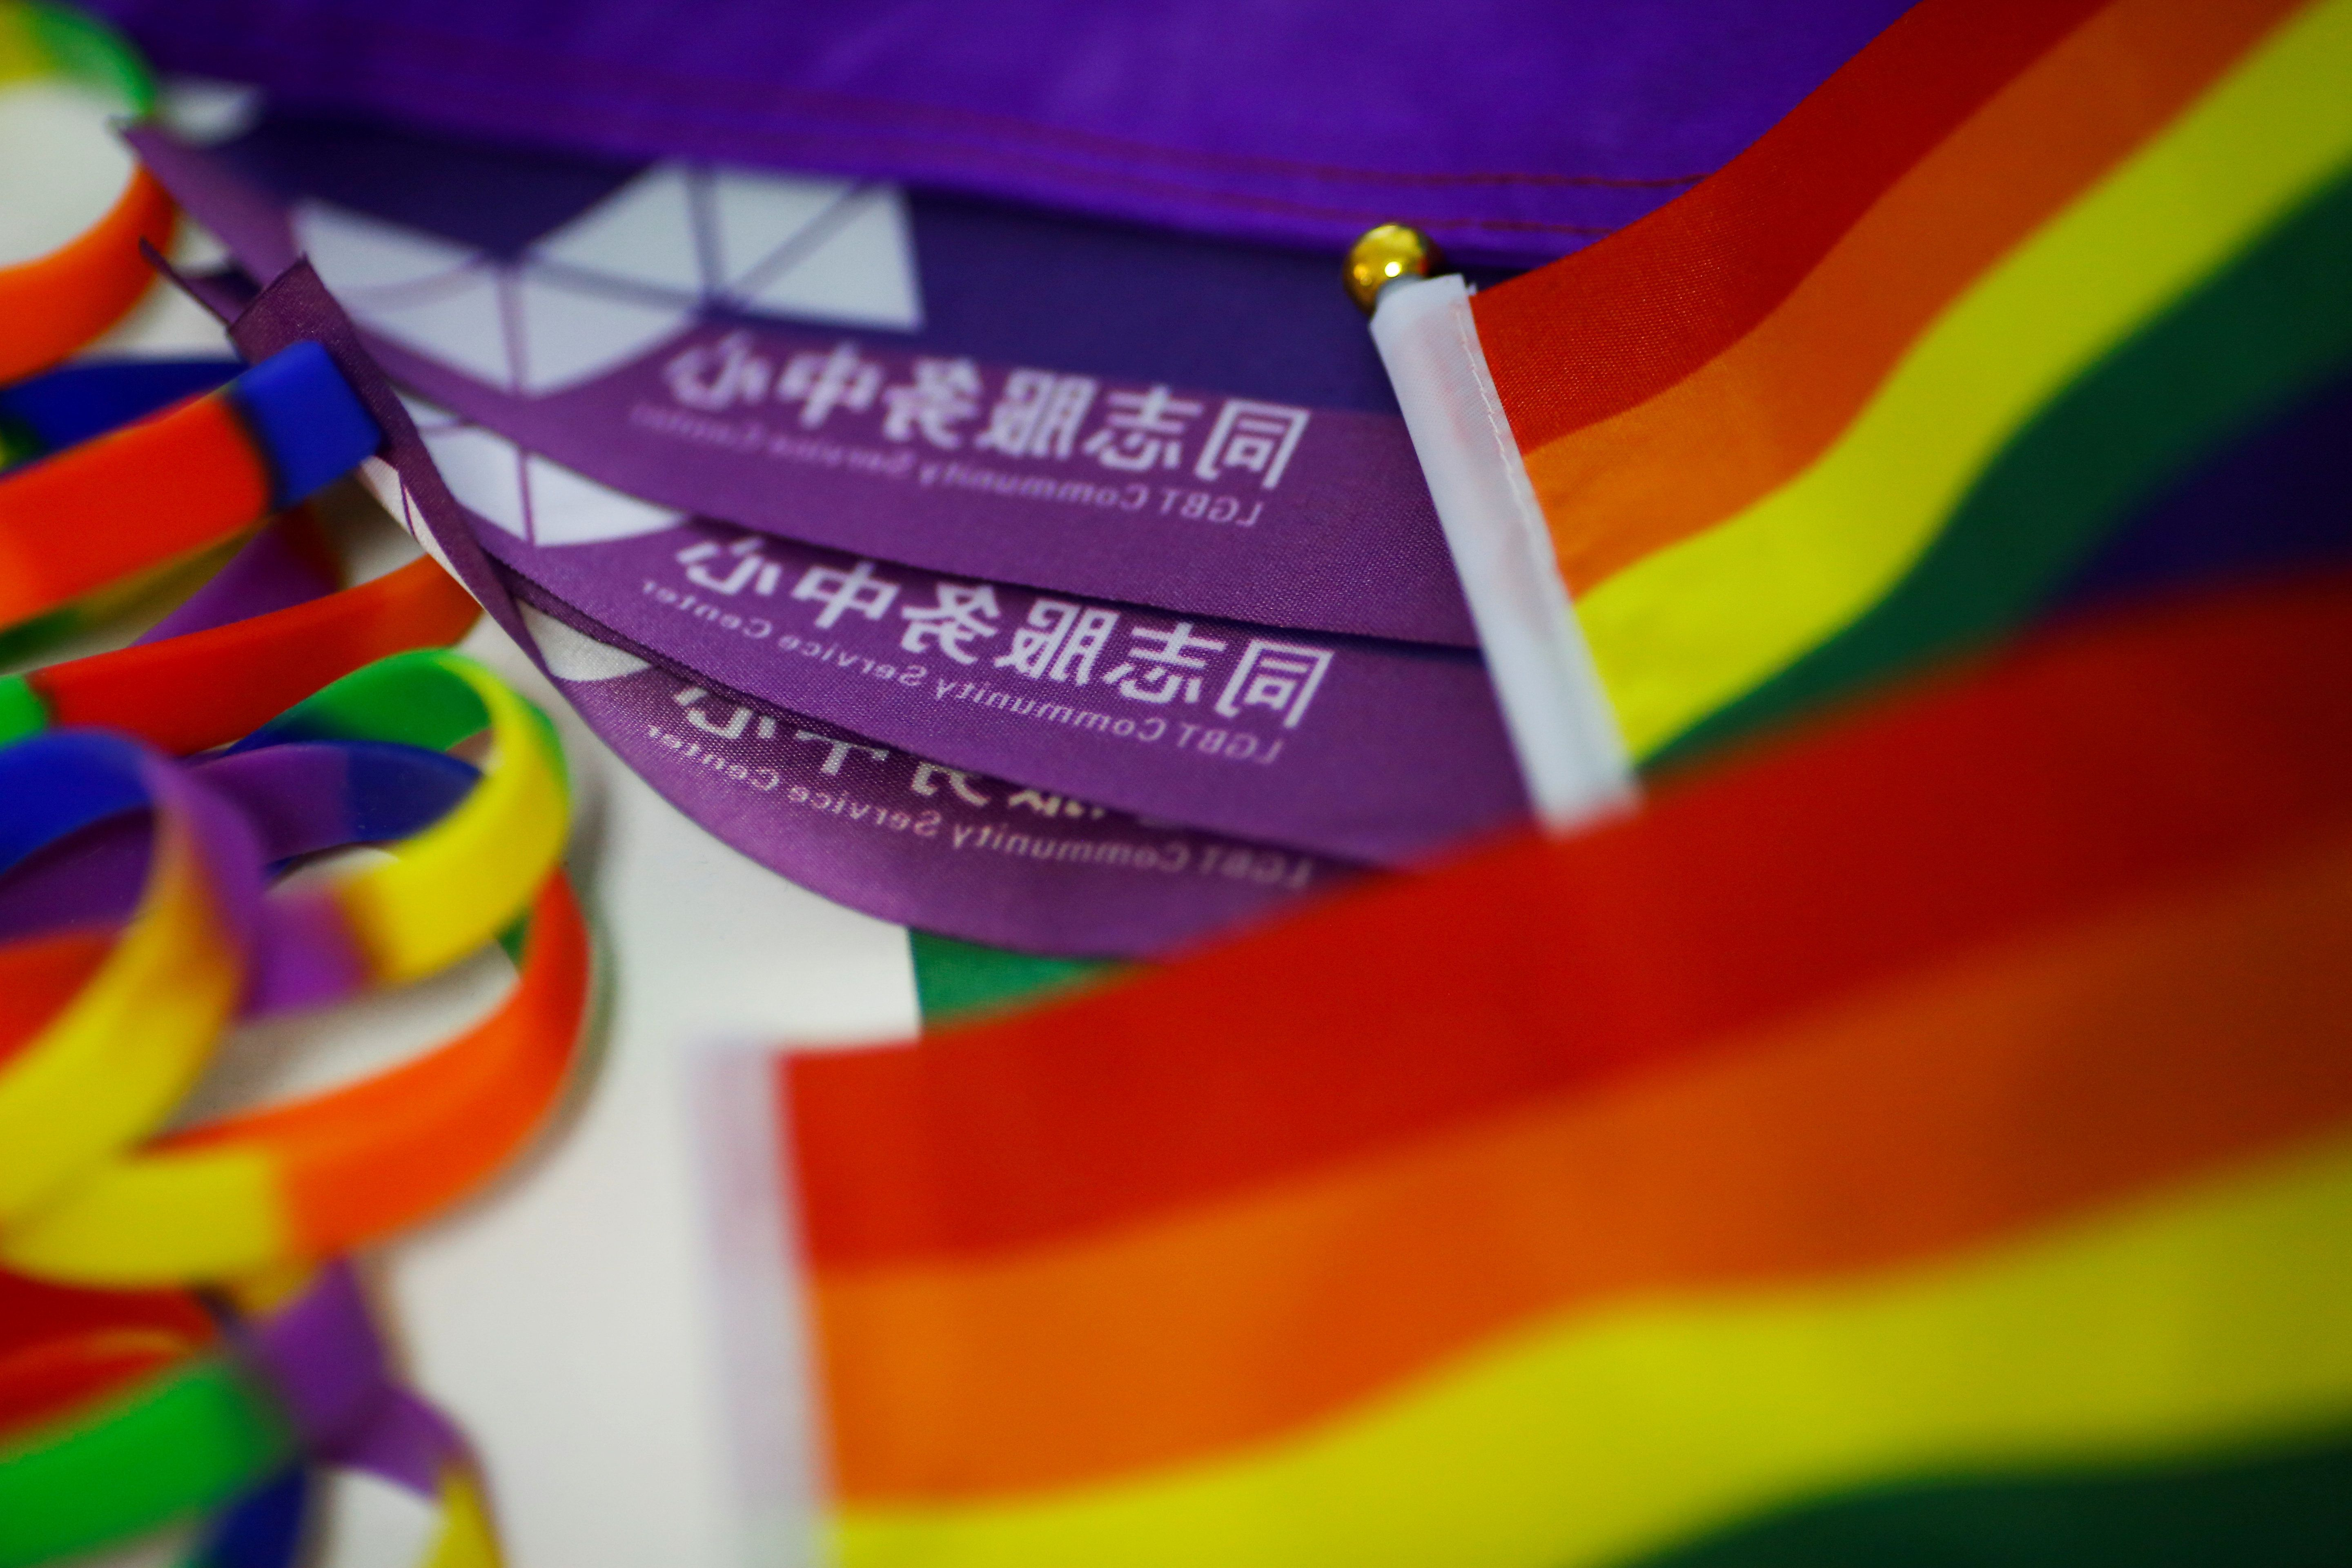 Rainbow flags lie on the desk of Liu Yifu, an organiser of a 5.17 km run to mark International Day Against Homophobia in Beijing, China, May 17, 2018. REUTERS/Thomas Peter